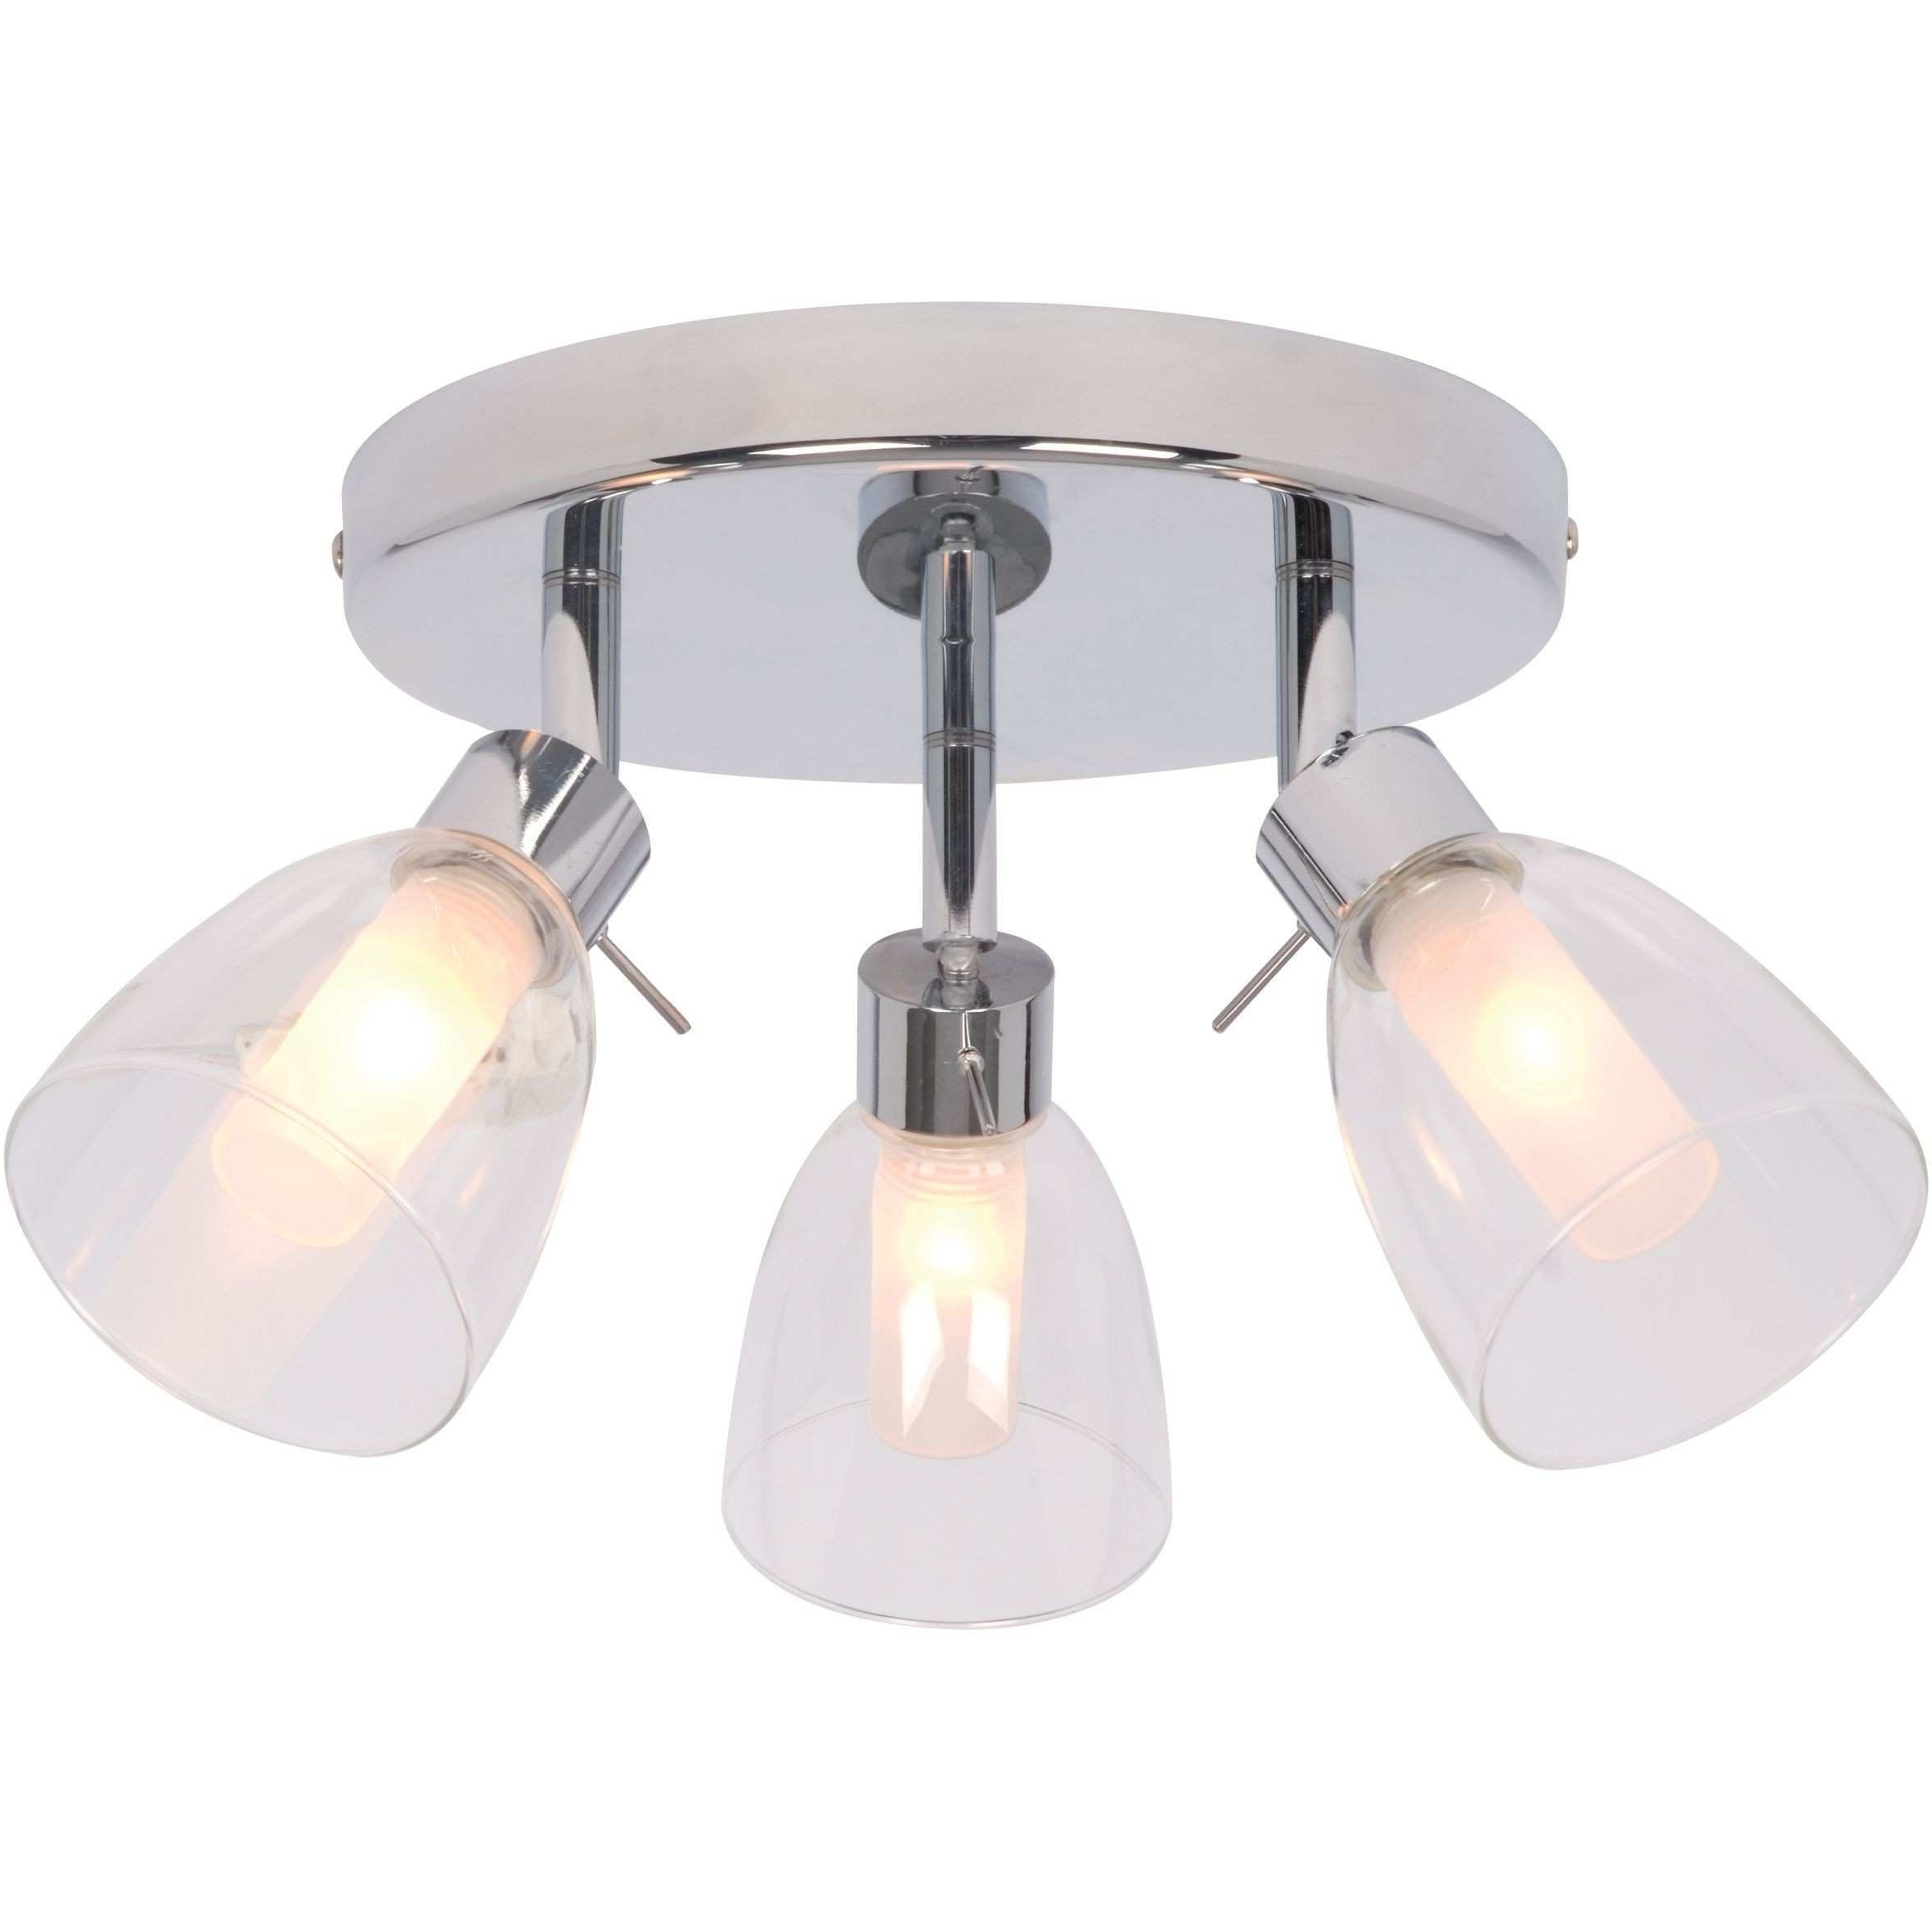 Best And Newest Steampunk Ceiling Light Elegant Lightsb&q G9 Halogen Bathroom Within Outdoor Ceiling Lights At B&q (View 4 of 20)